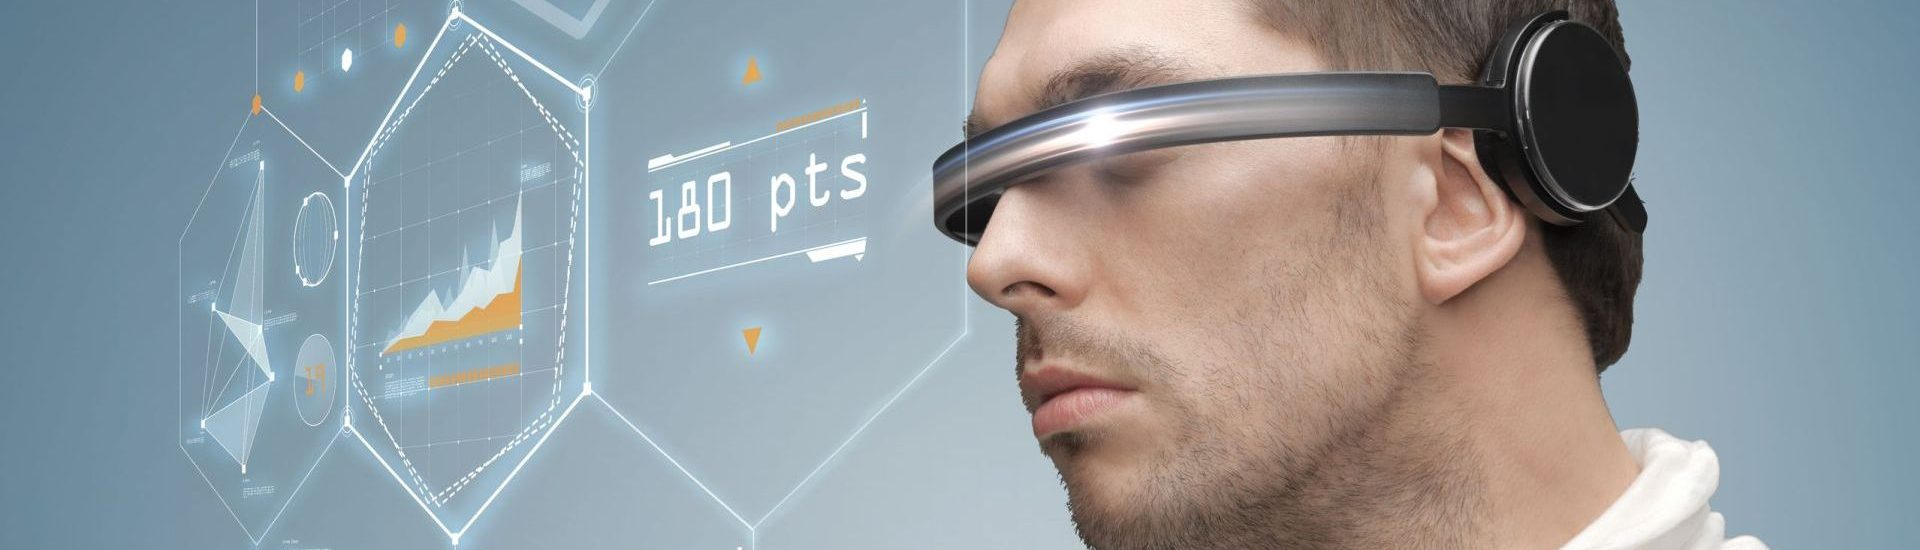 31276119 - future, technology, business and people concept - man in futuristic glasses